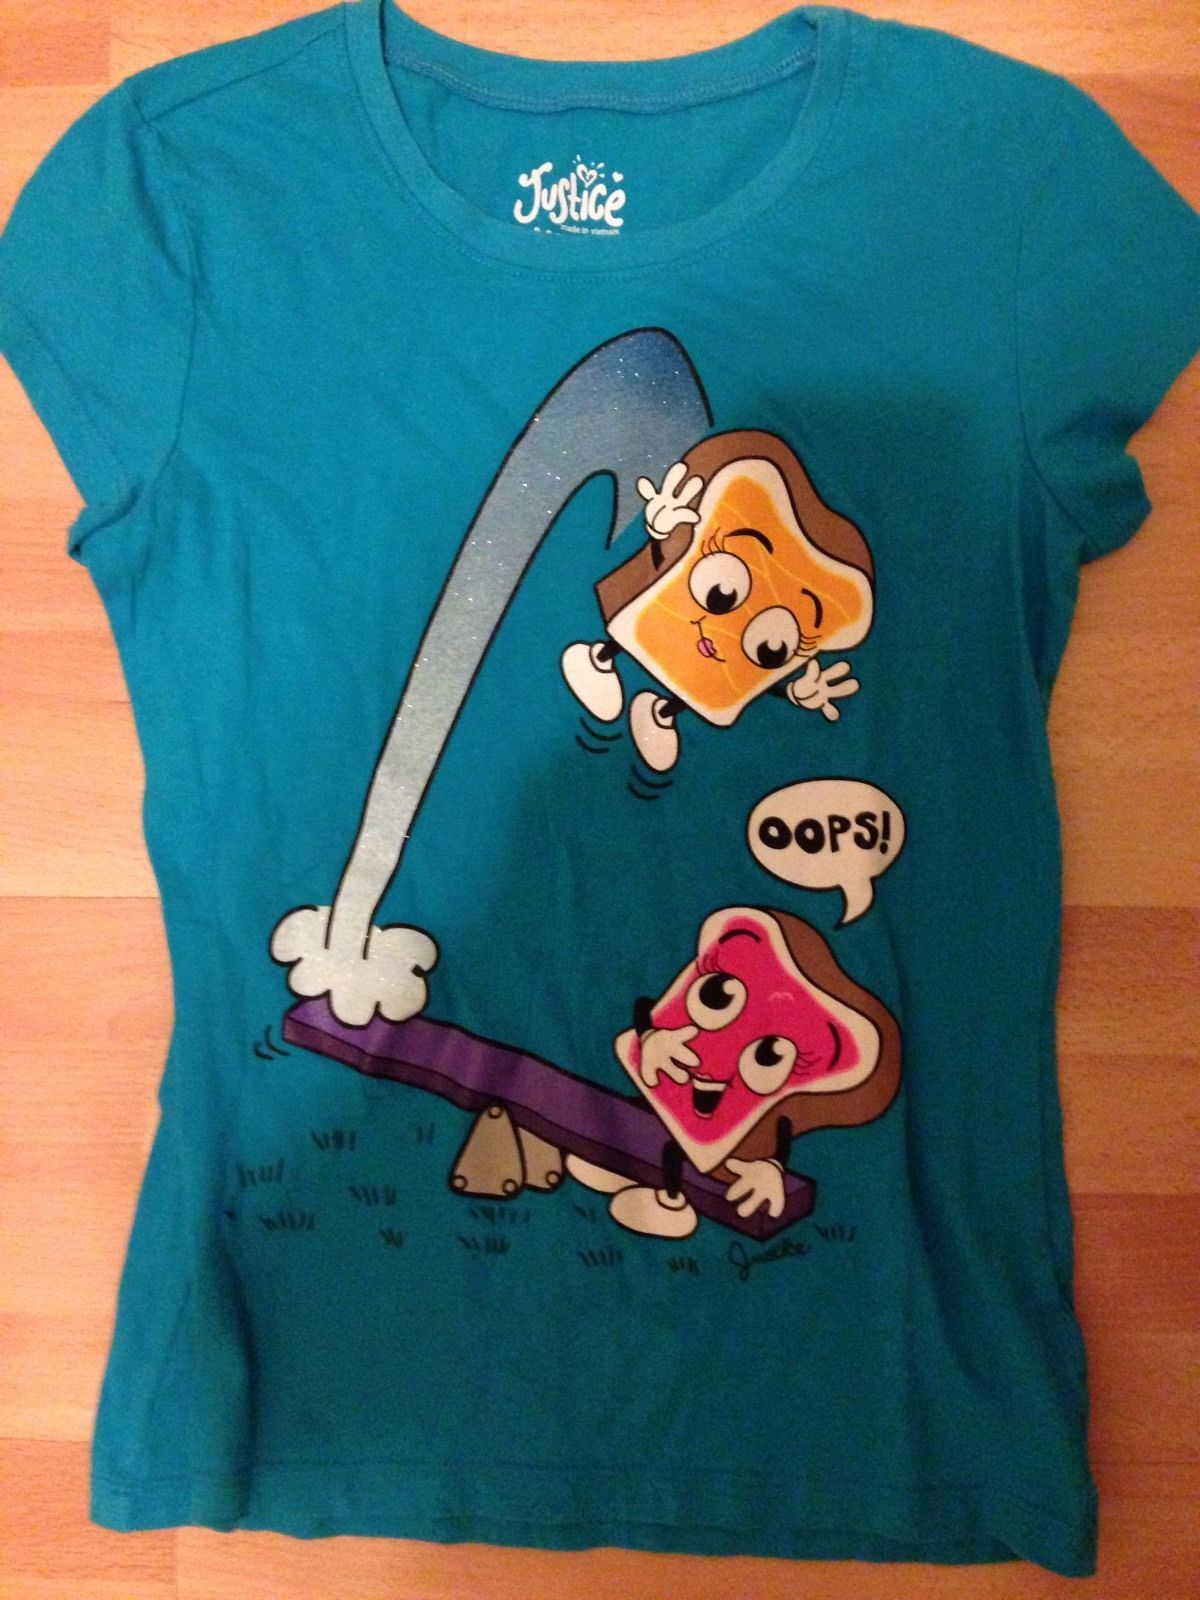 Justice PB&J see saw t shirt (With images) Justice tees